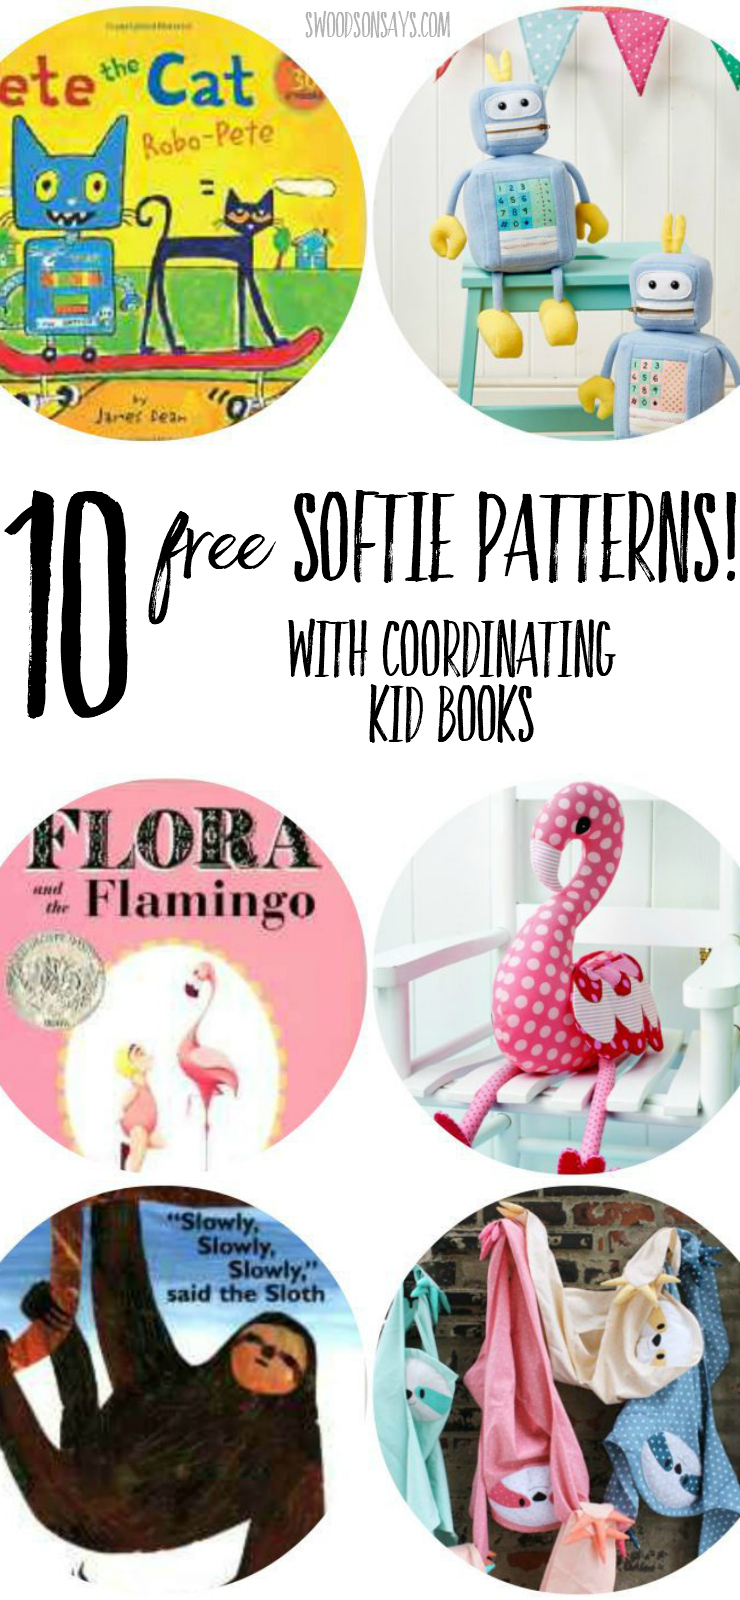 """Check out a big list of free softie patterns matched up with coordinating kid's books! Softies are such a fun gift to sew for kids, and make the perfect """"half handmade"""" gift paired with a book. #freesoftiepattern"""